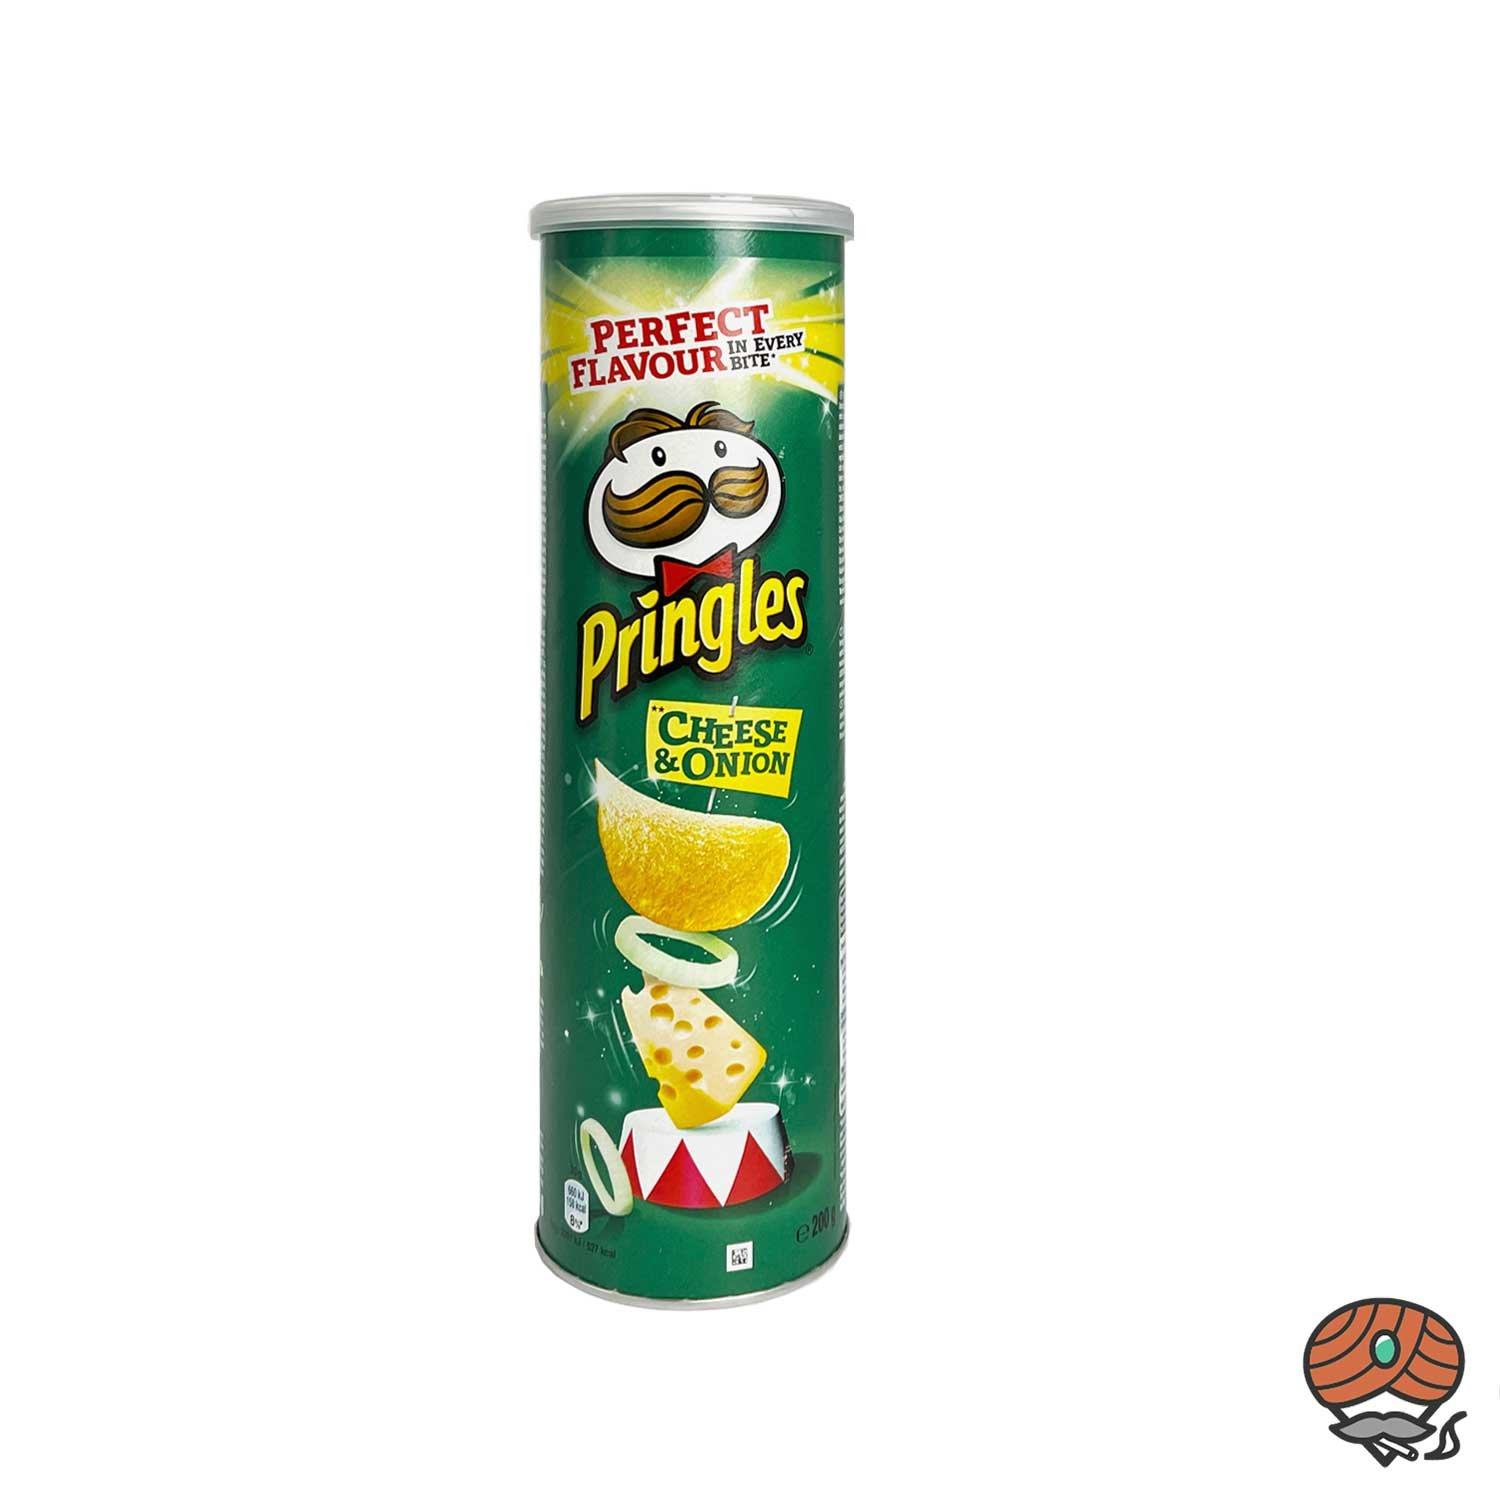 Pringles Cheese & Onion Stapelchips 200g Dose